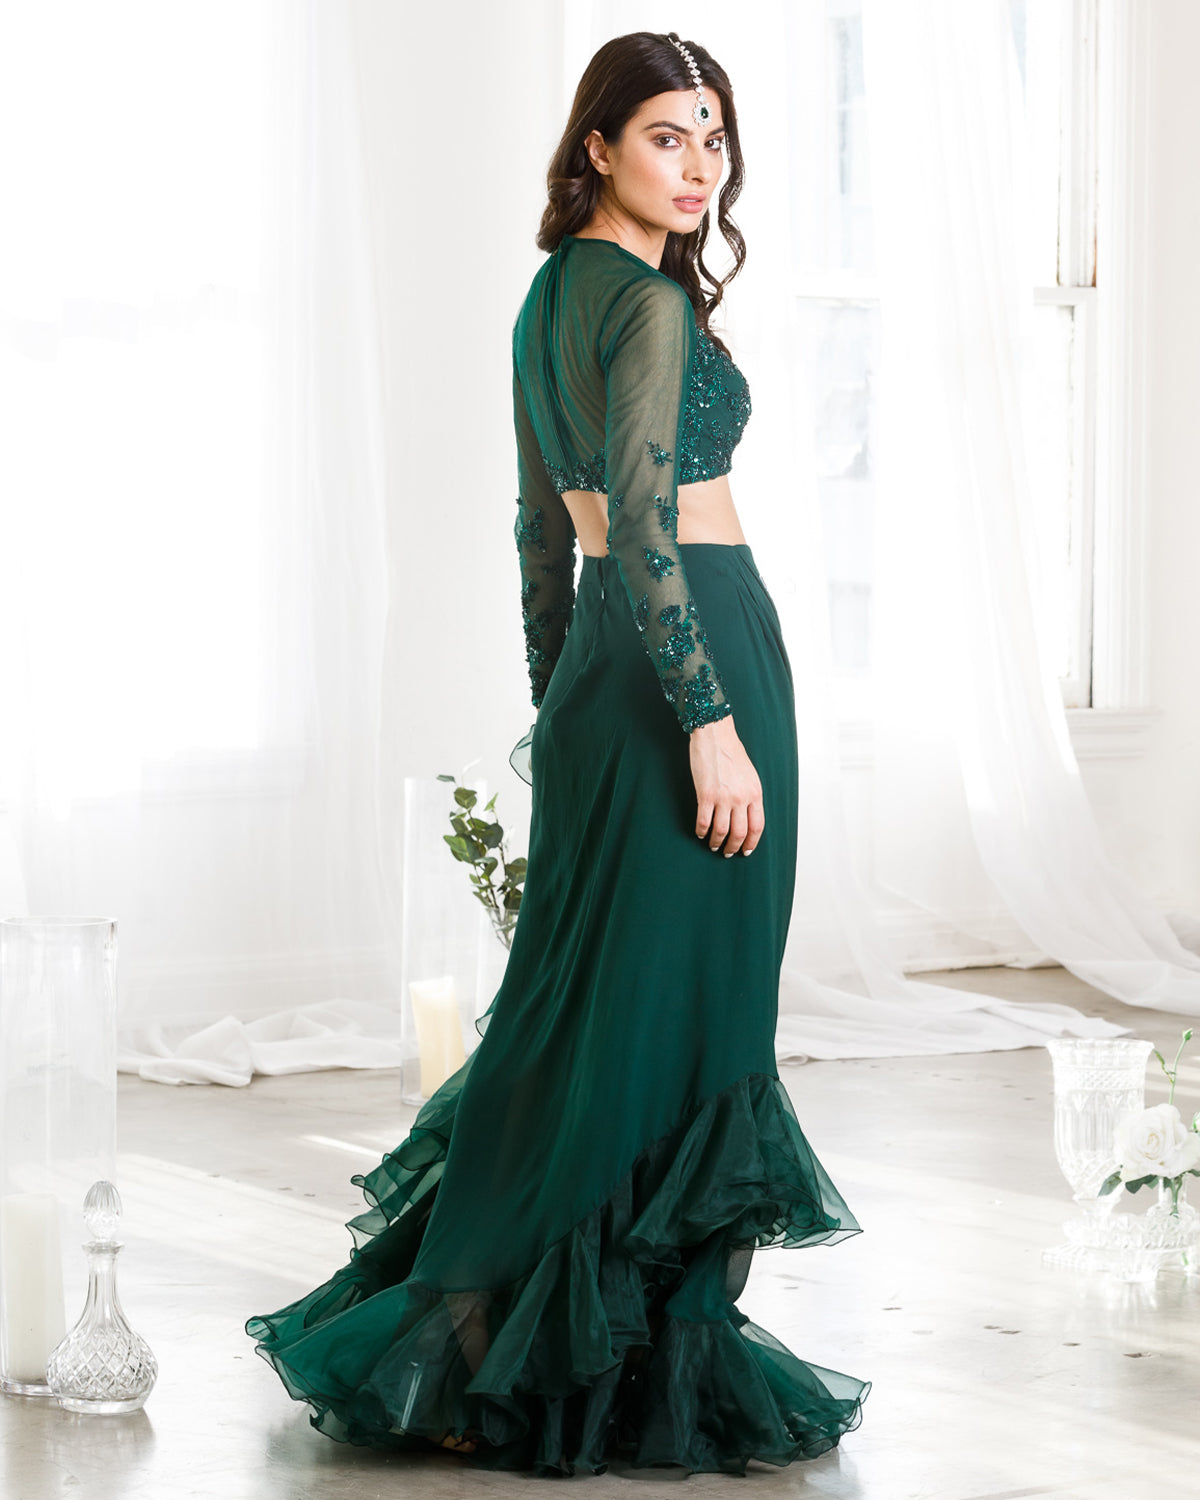 Emerald Green Ruffle Edged Sari